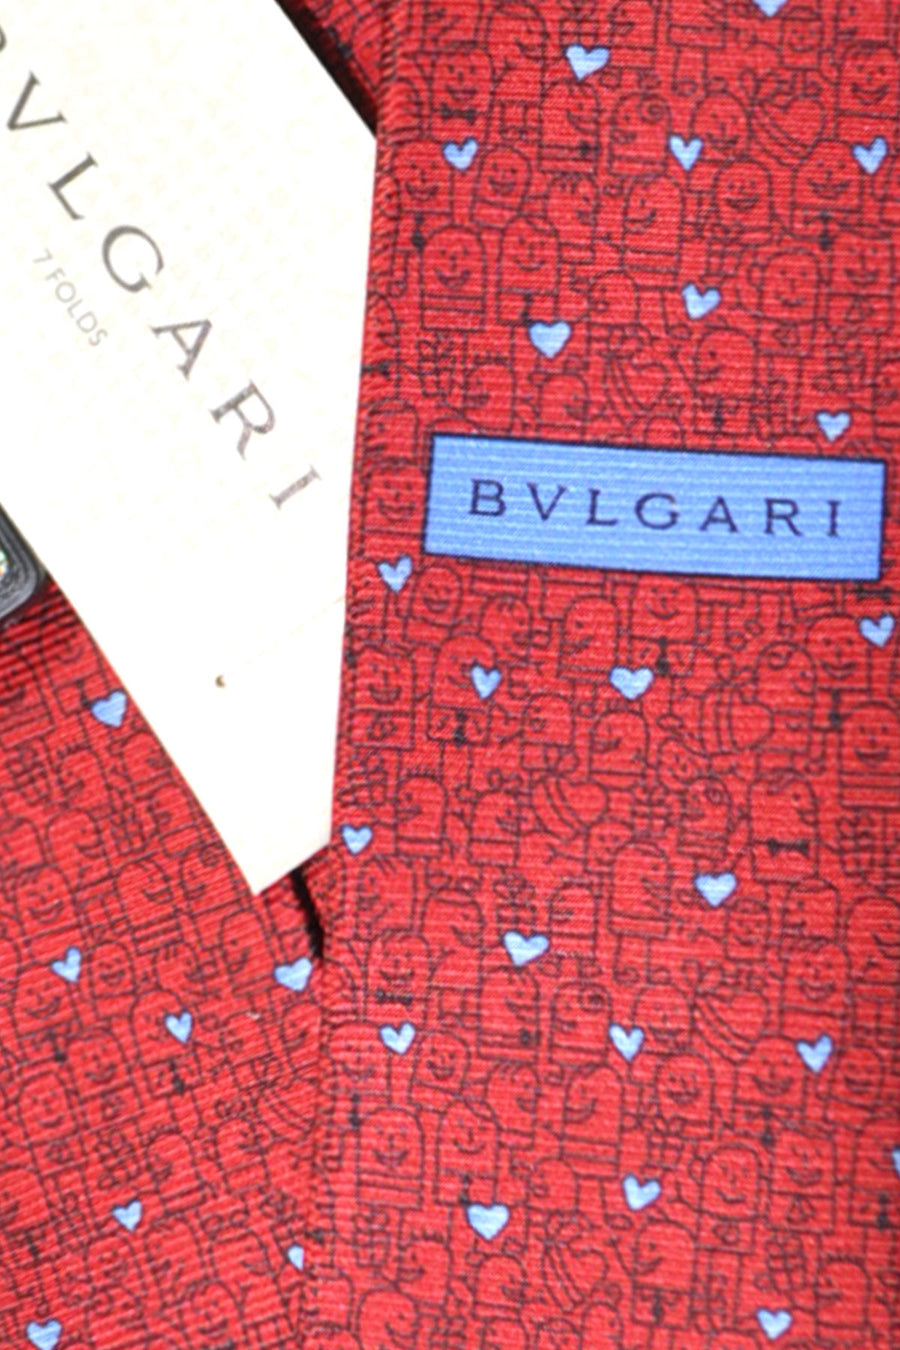 Bvlgari Sevenfold Tie Red Blue Heart Novelty Tie